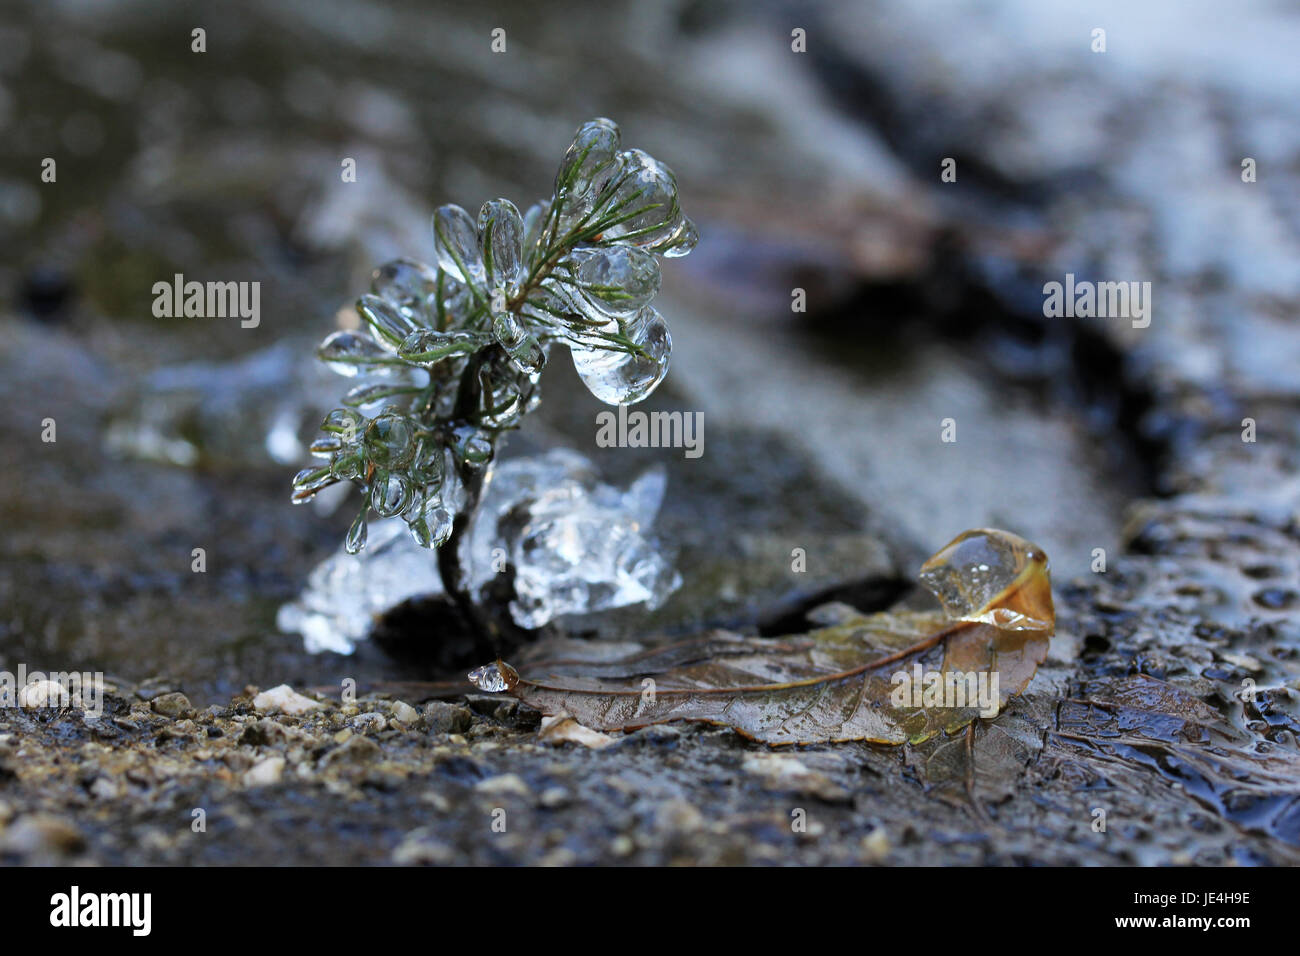 ice layer on a plant Stock Photo